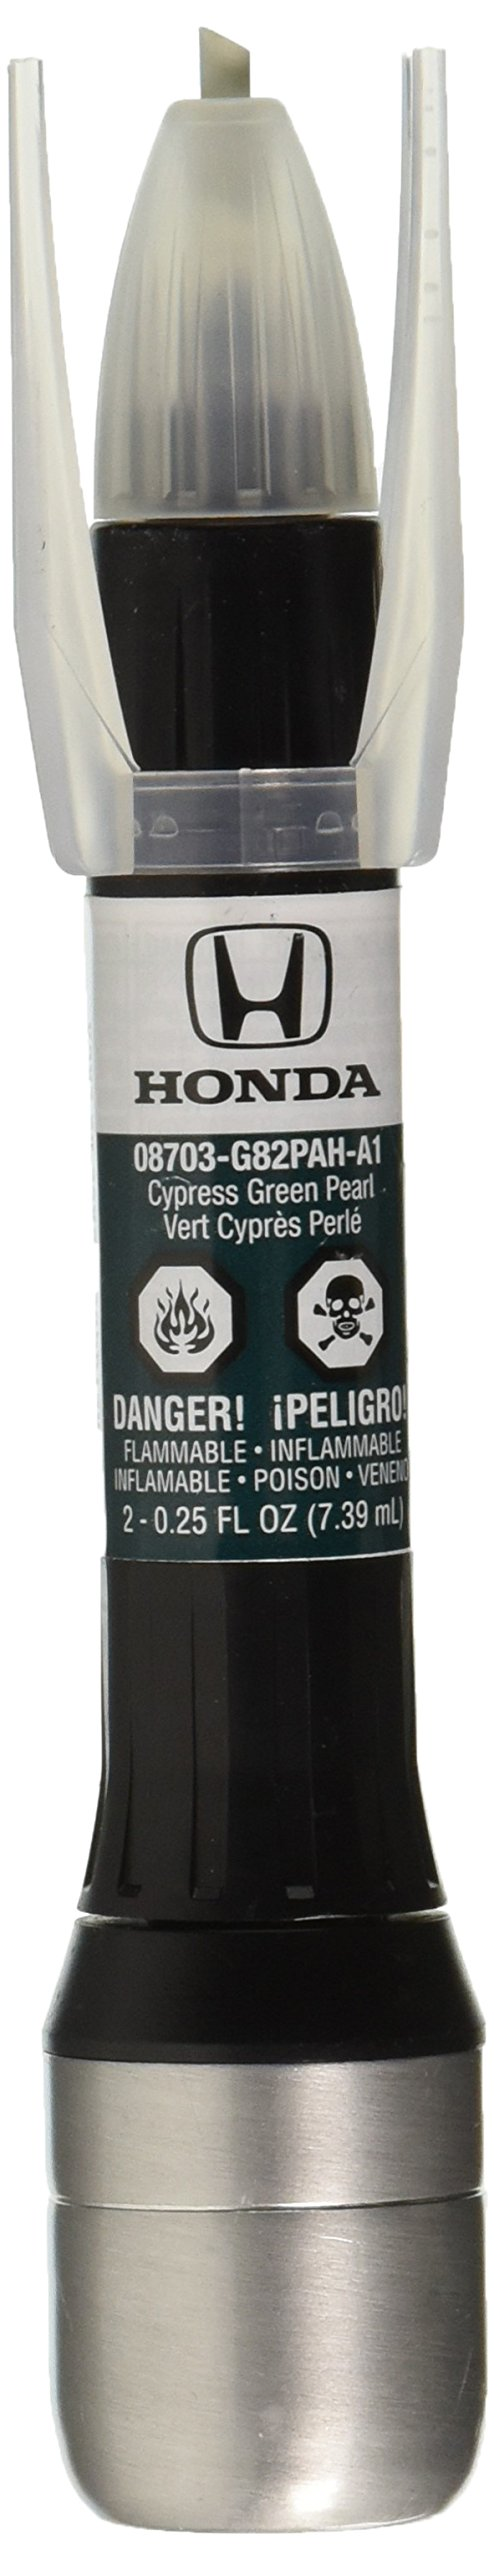 Genuine Honda (08703-G82PAH-A1) Touch-Up Paint, Cypress Green Pearl